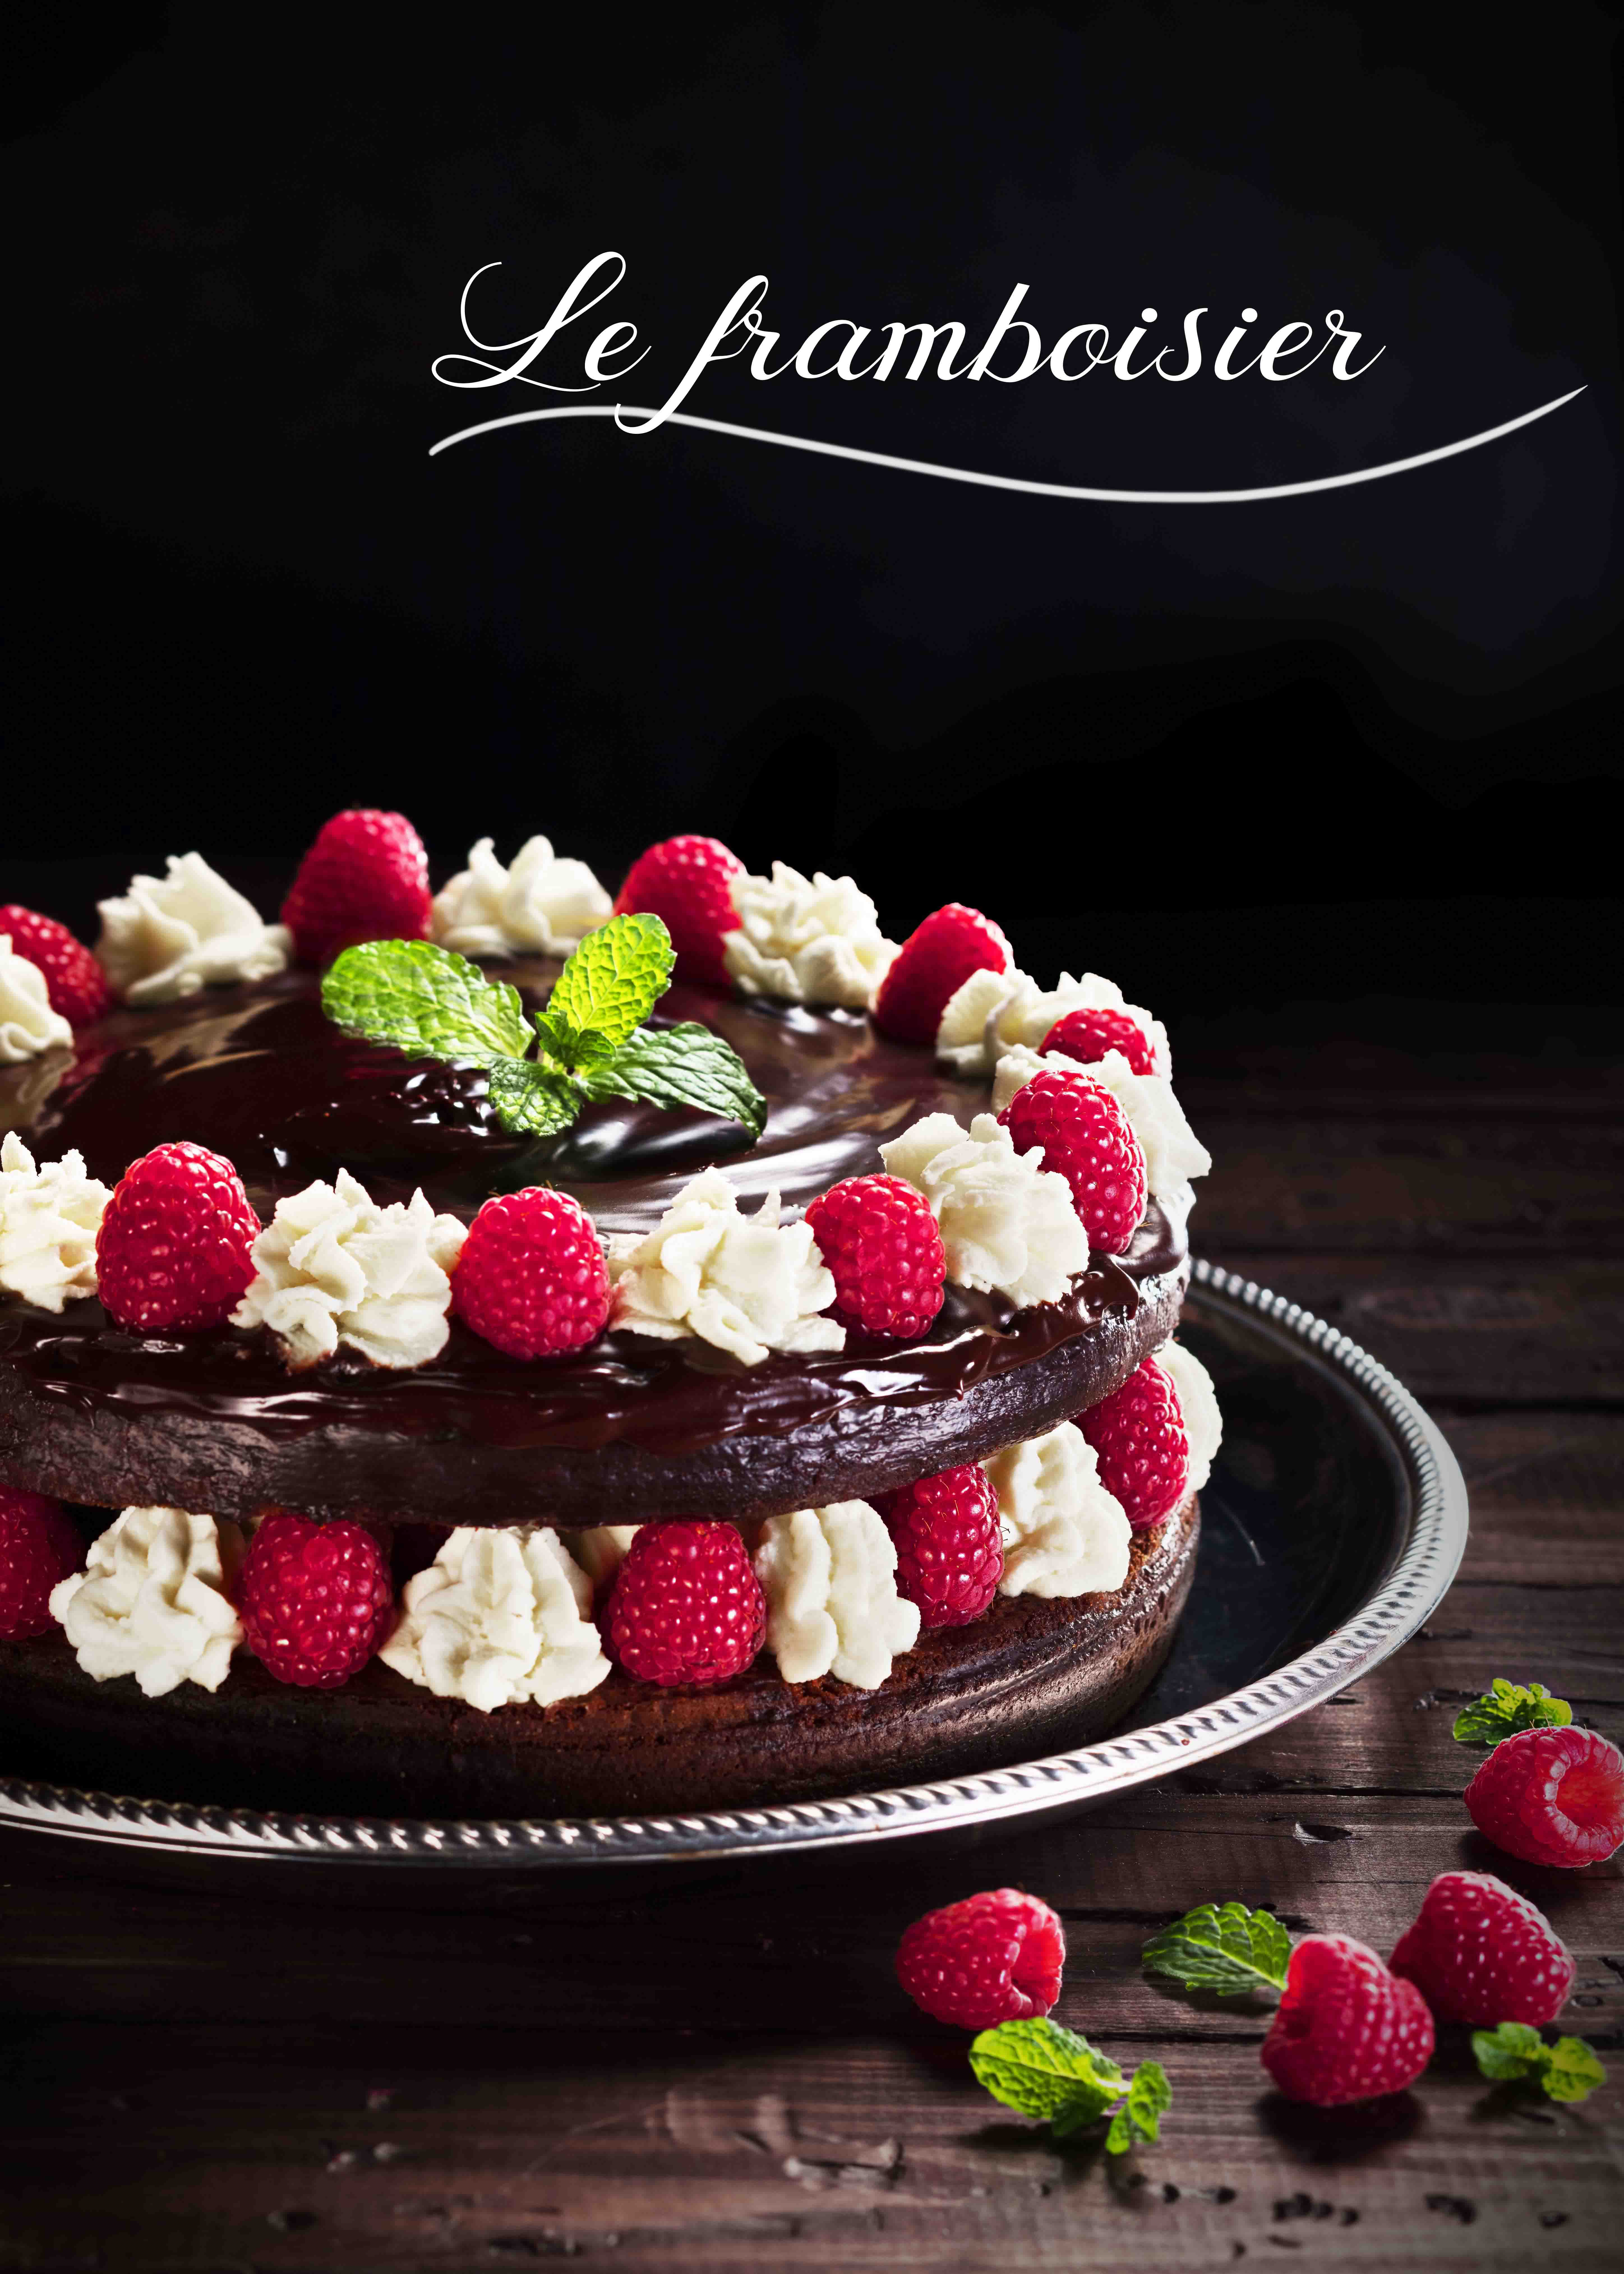 Photographie culinaire le framboisier